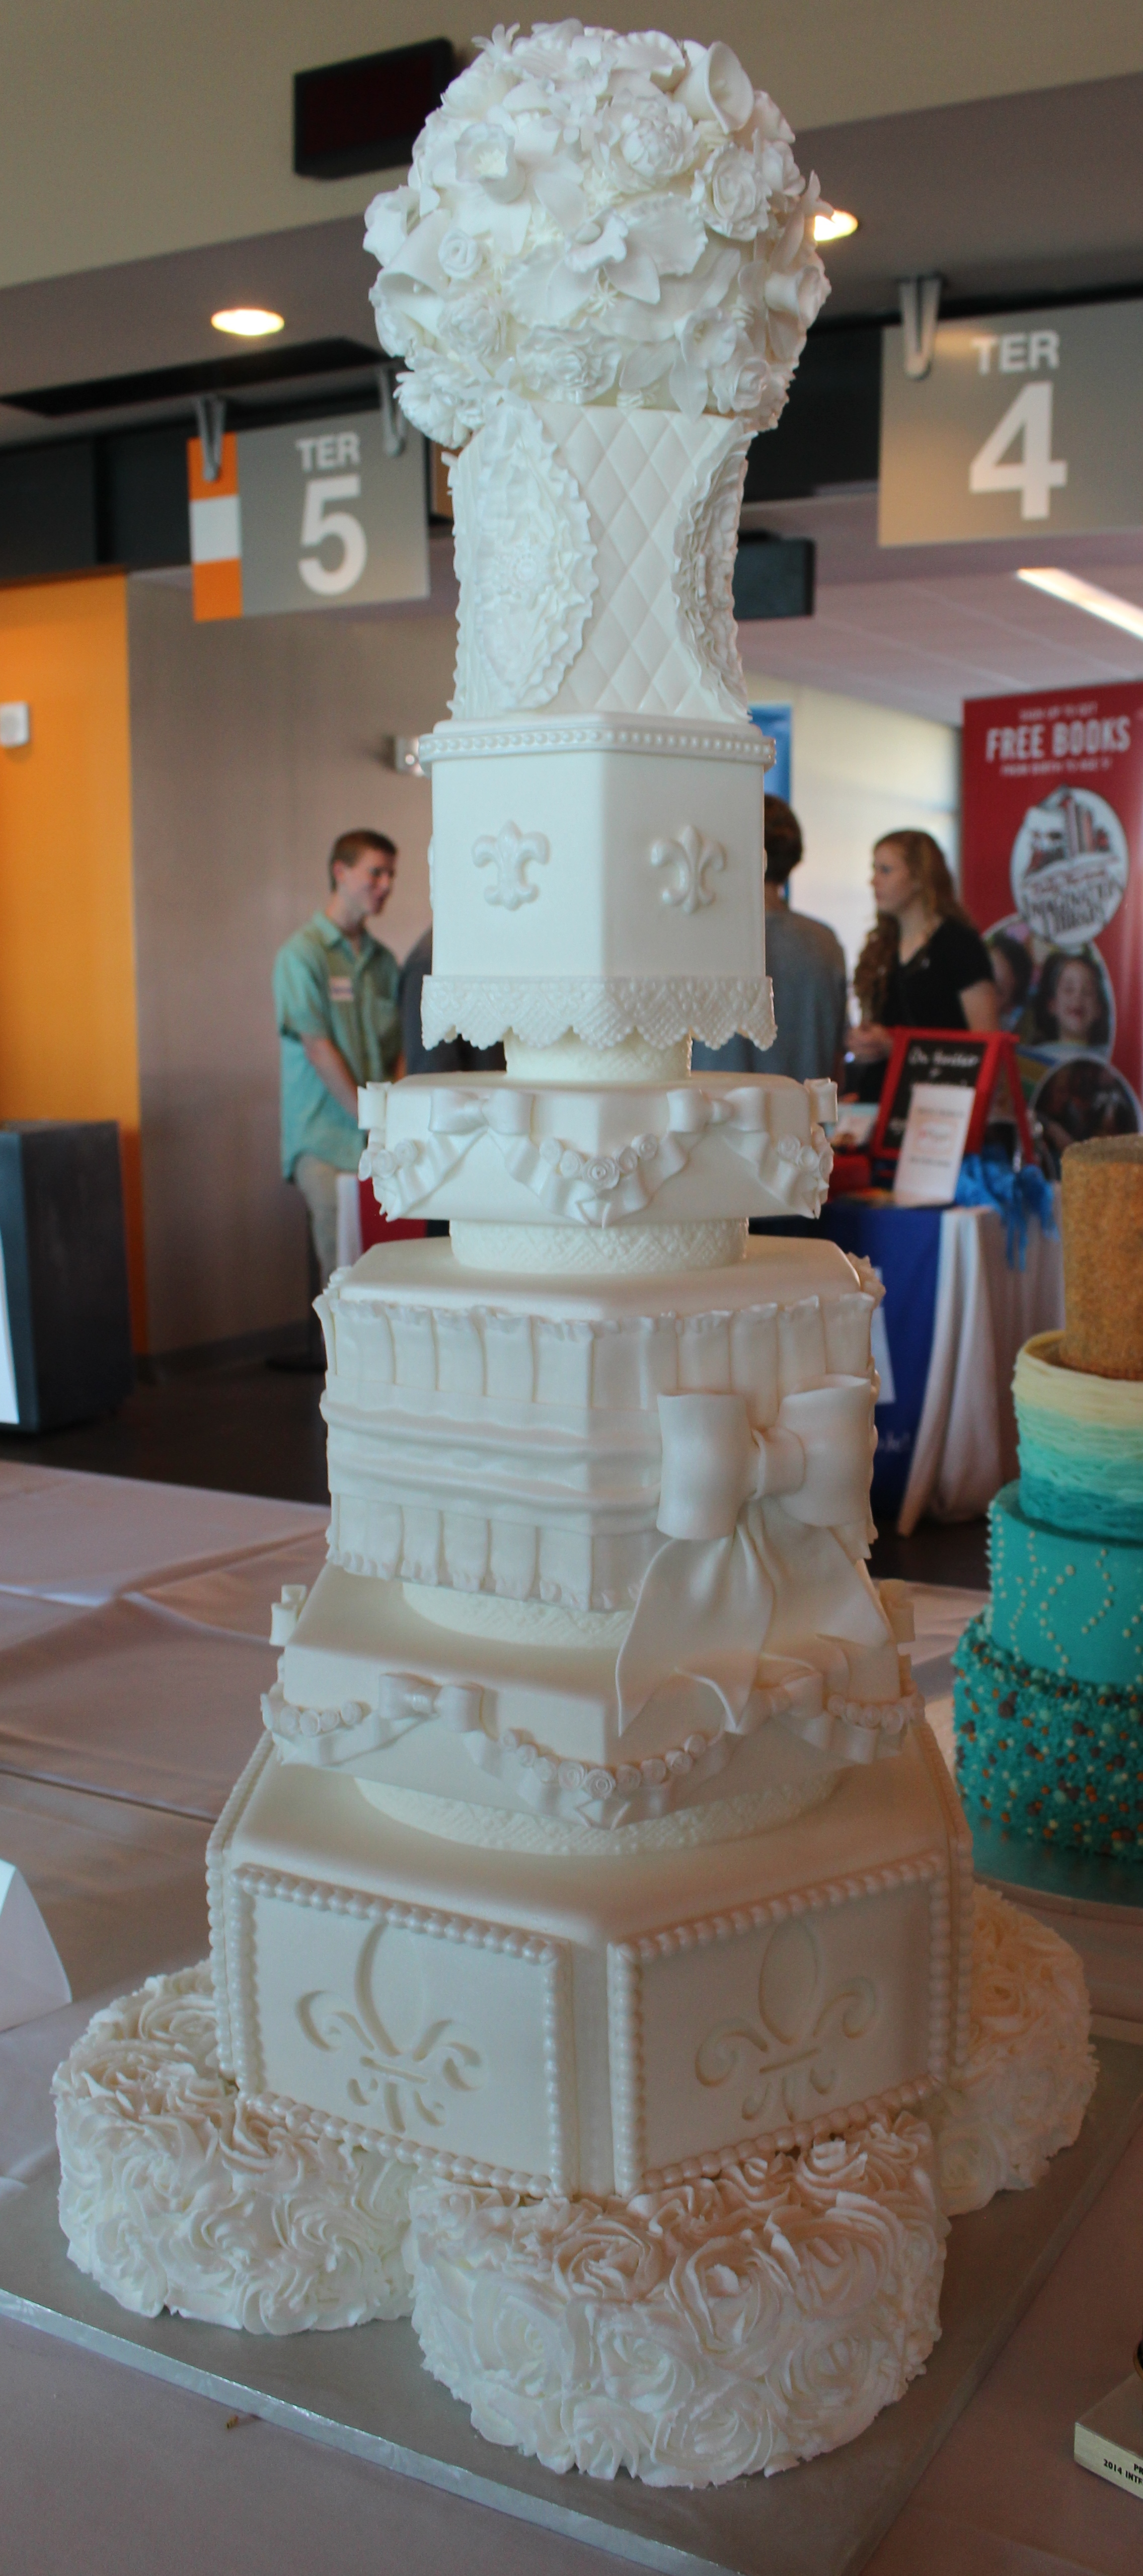 Elegant, tall wedding cake | Oh, the Places We See